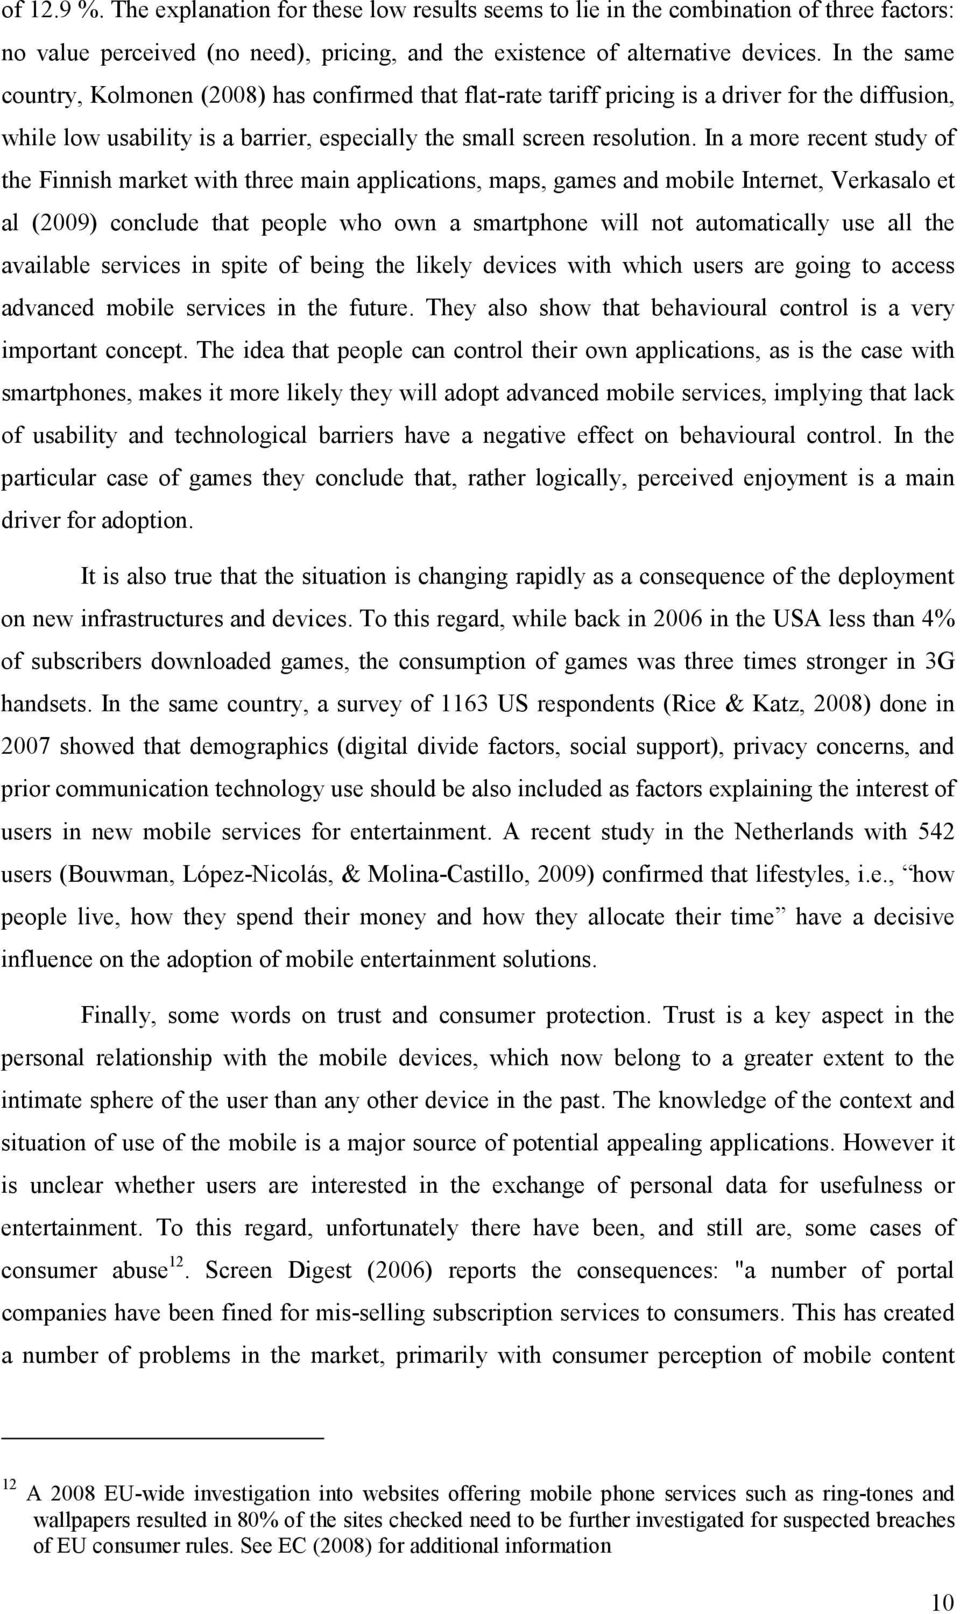 In a more recent study of the Finnish market with three main applications, maps, games and mobile Internet, Verkasalo et al (2009) conclude that people who own a smartphone will not automatically use